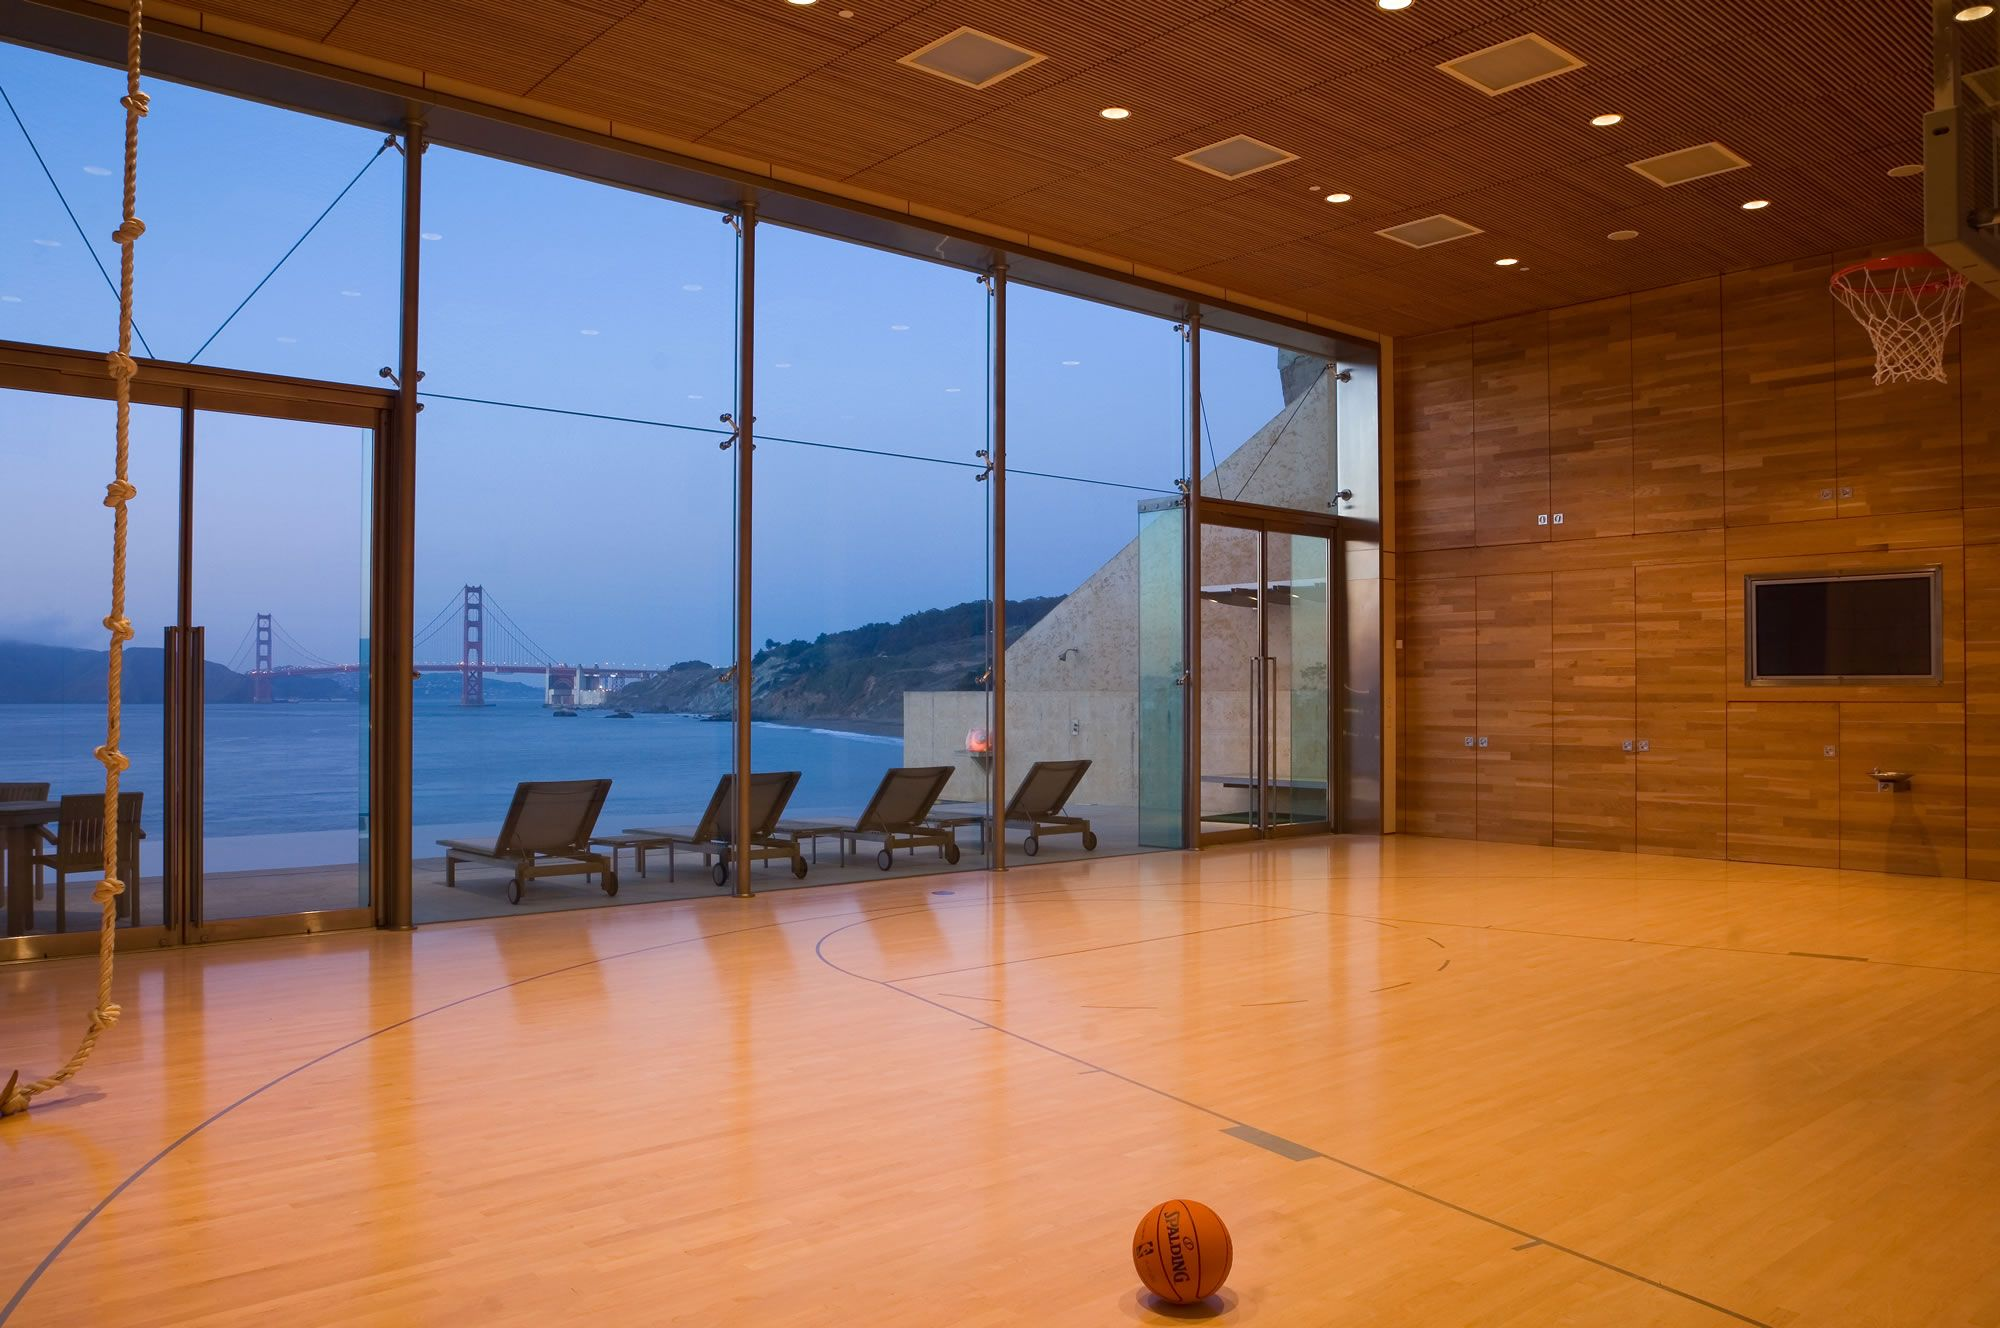 Sea cliff addition gym indoor basketball court for Basketball court at home